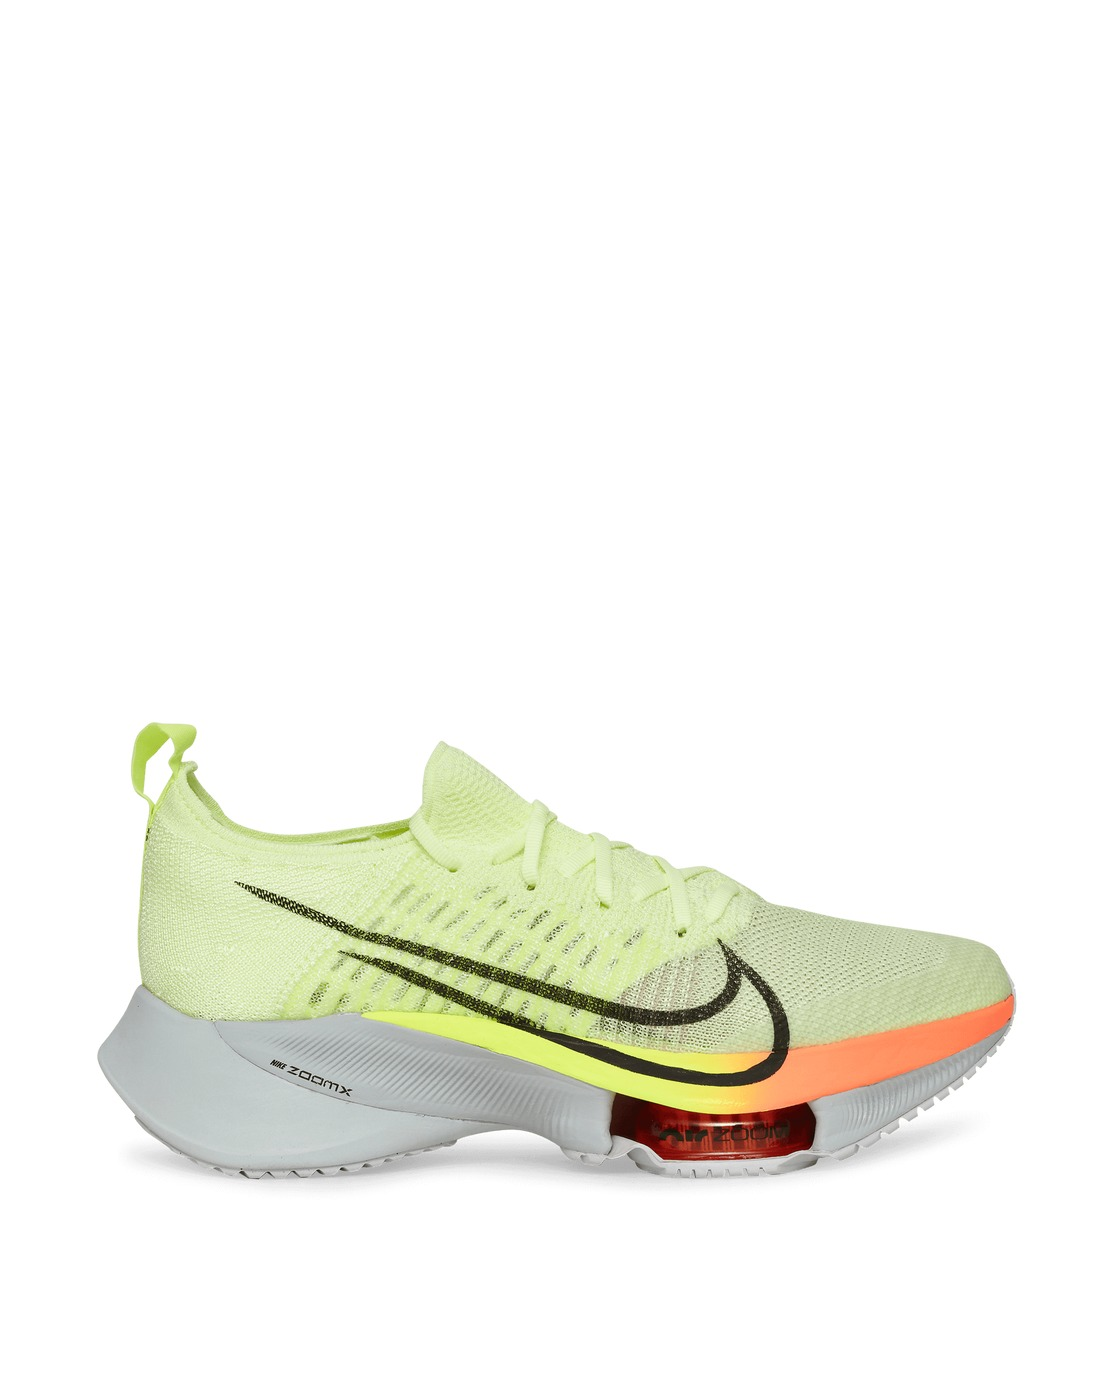 Photo: Nike Air Zoom Tempo Next% Flyknit Sneakers Barely